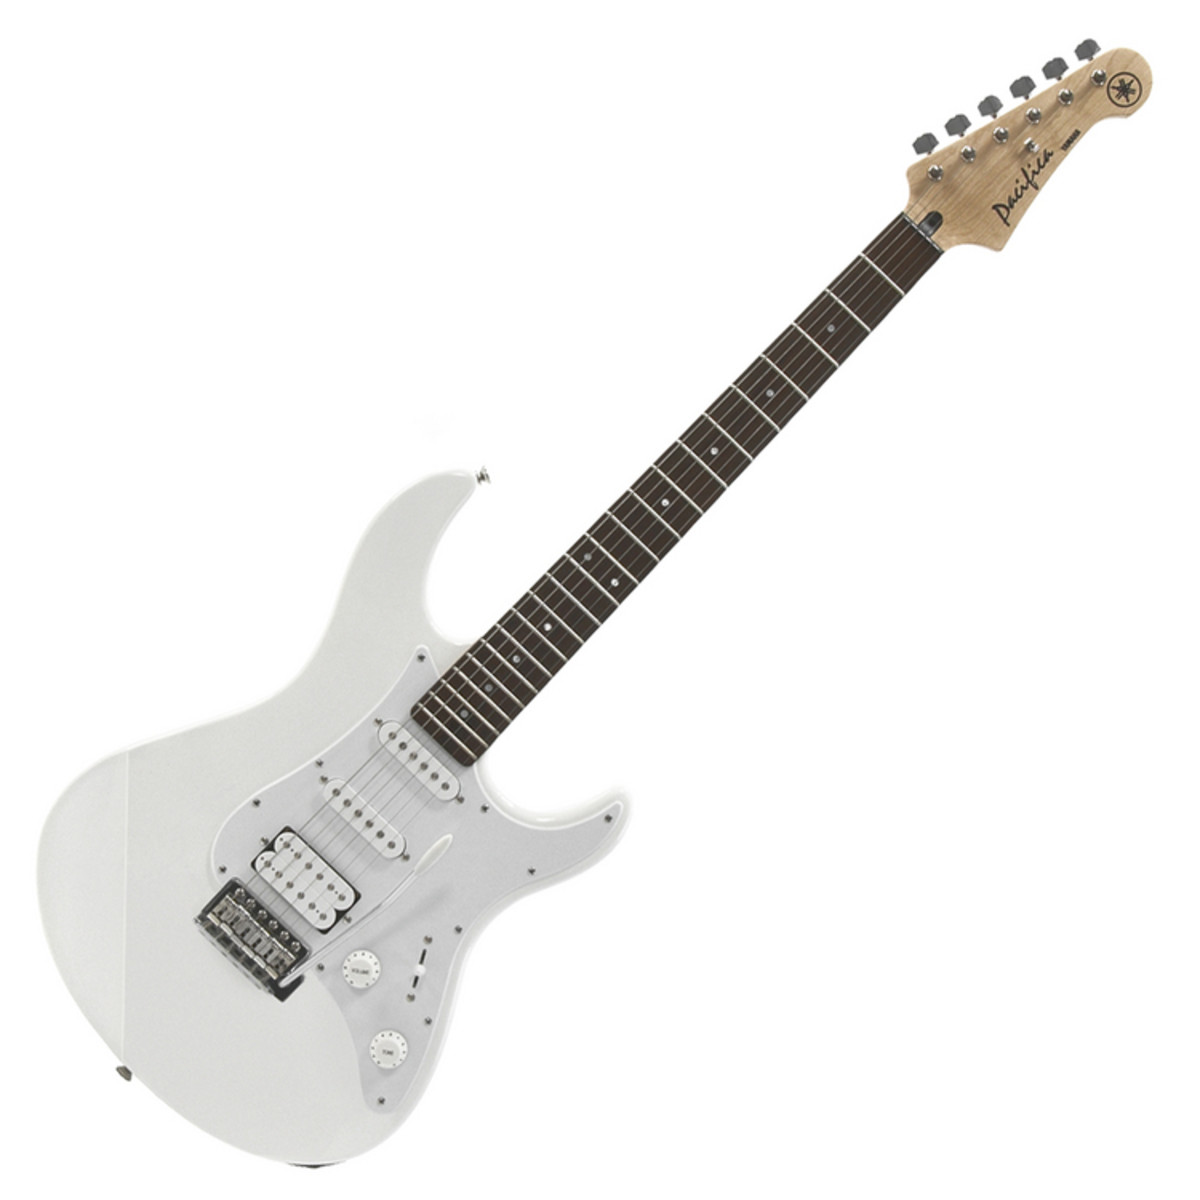 yamaha pacifica 012 electric guitar vintage white trax music store. Black Bedroom Furniture Sets. Home Design Ideas